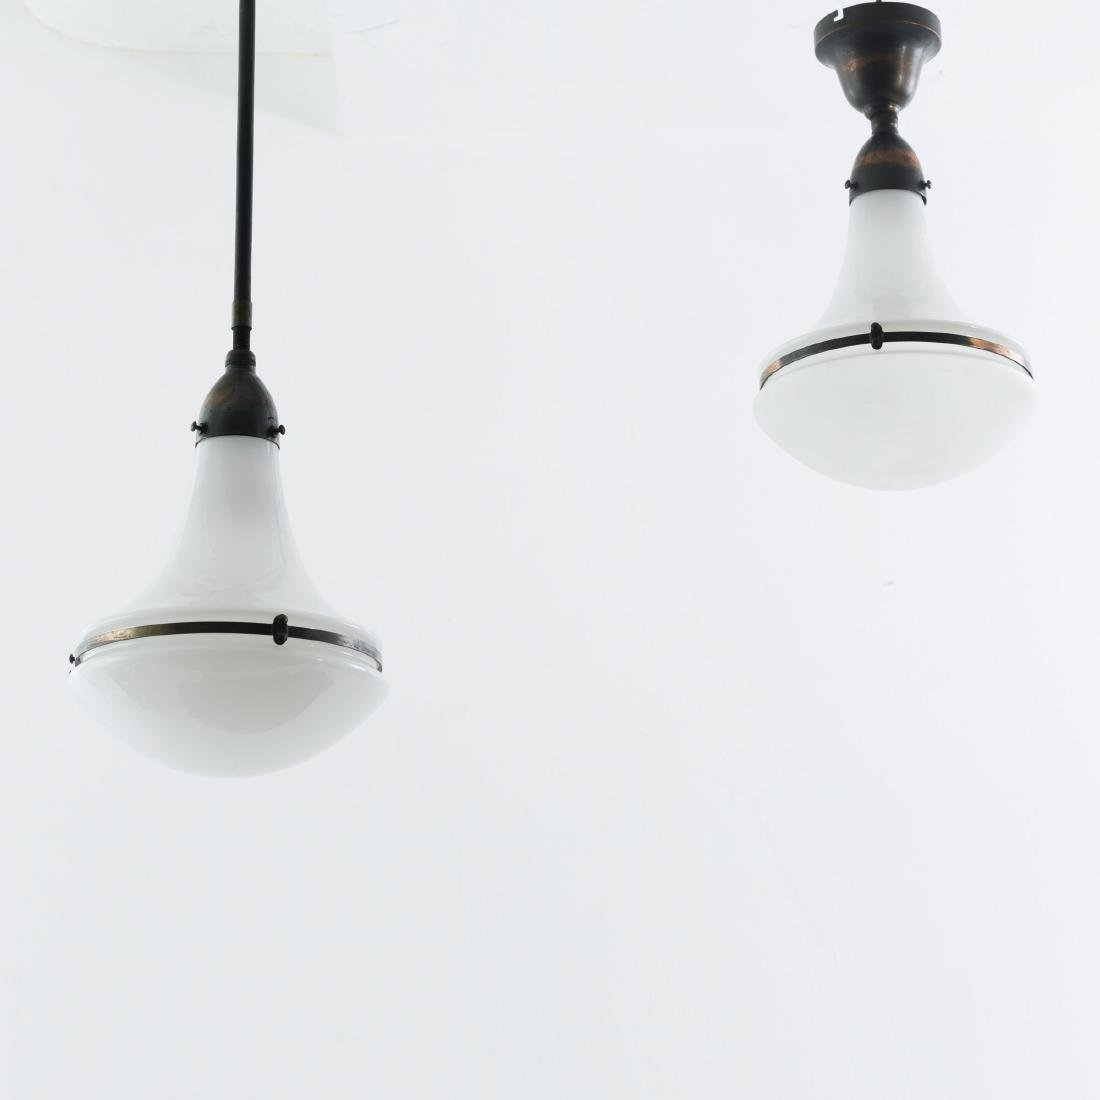 Two ceiling lights, c. 1925 - 3